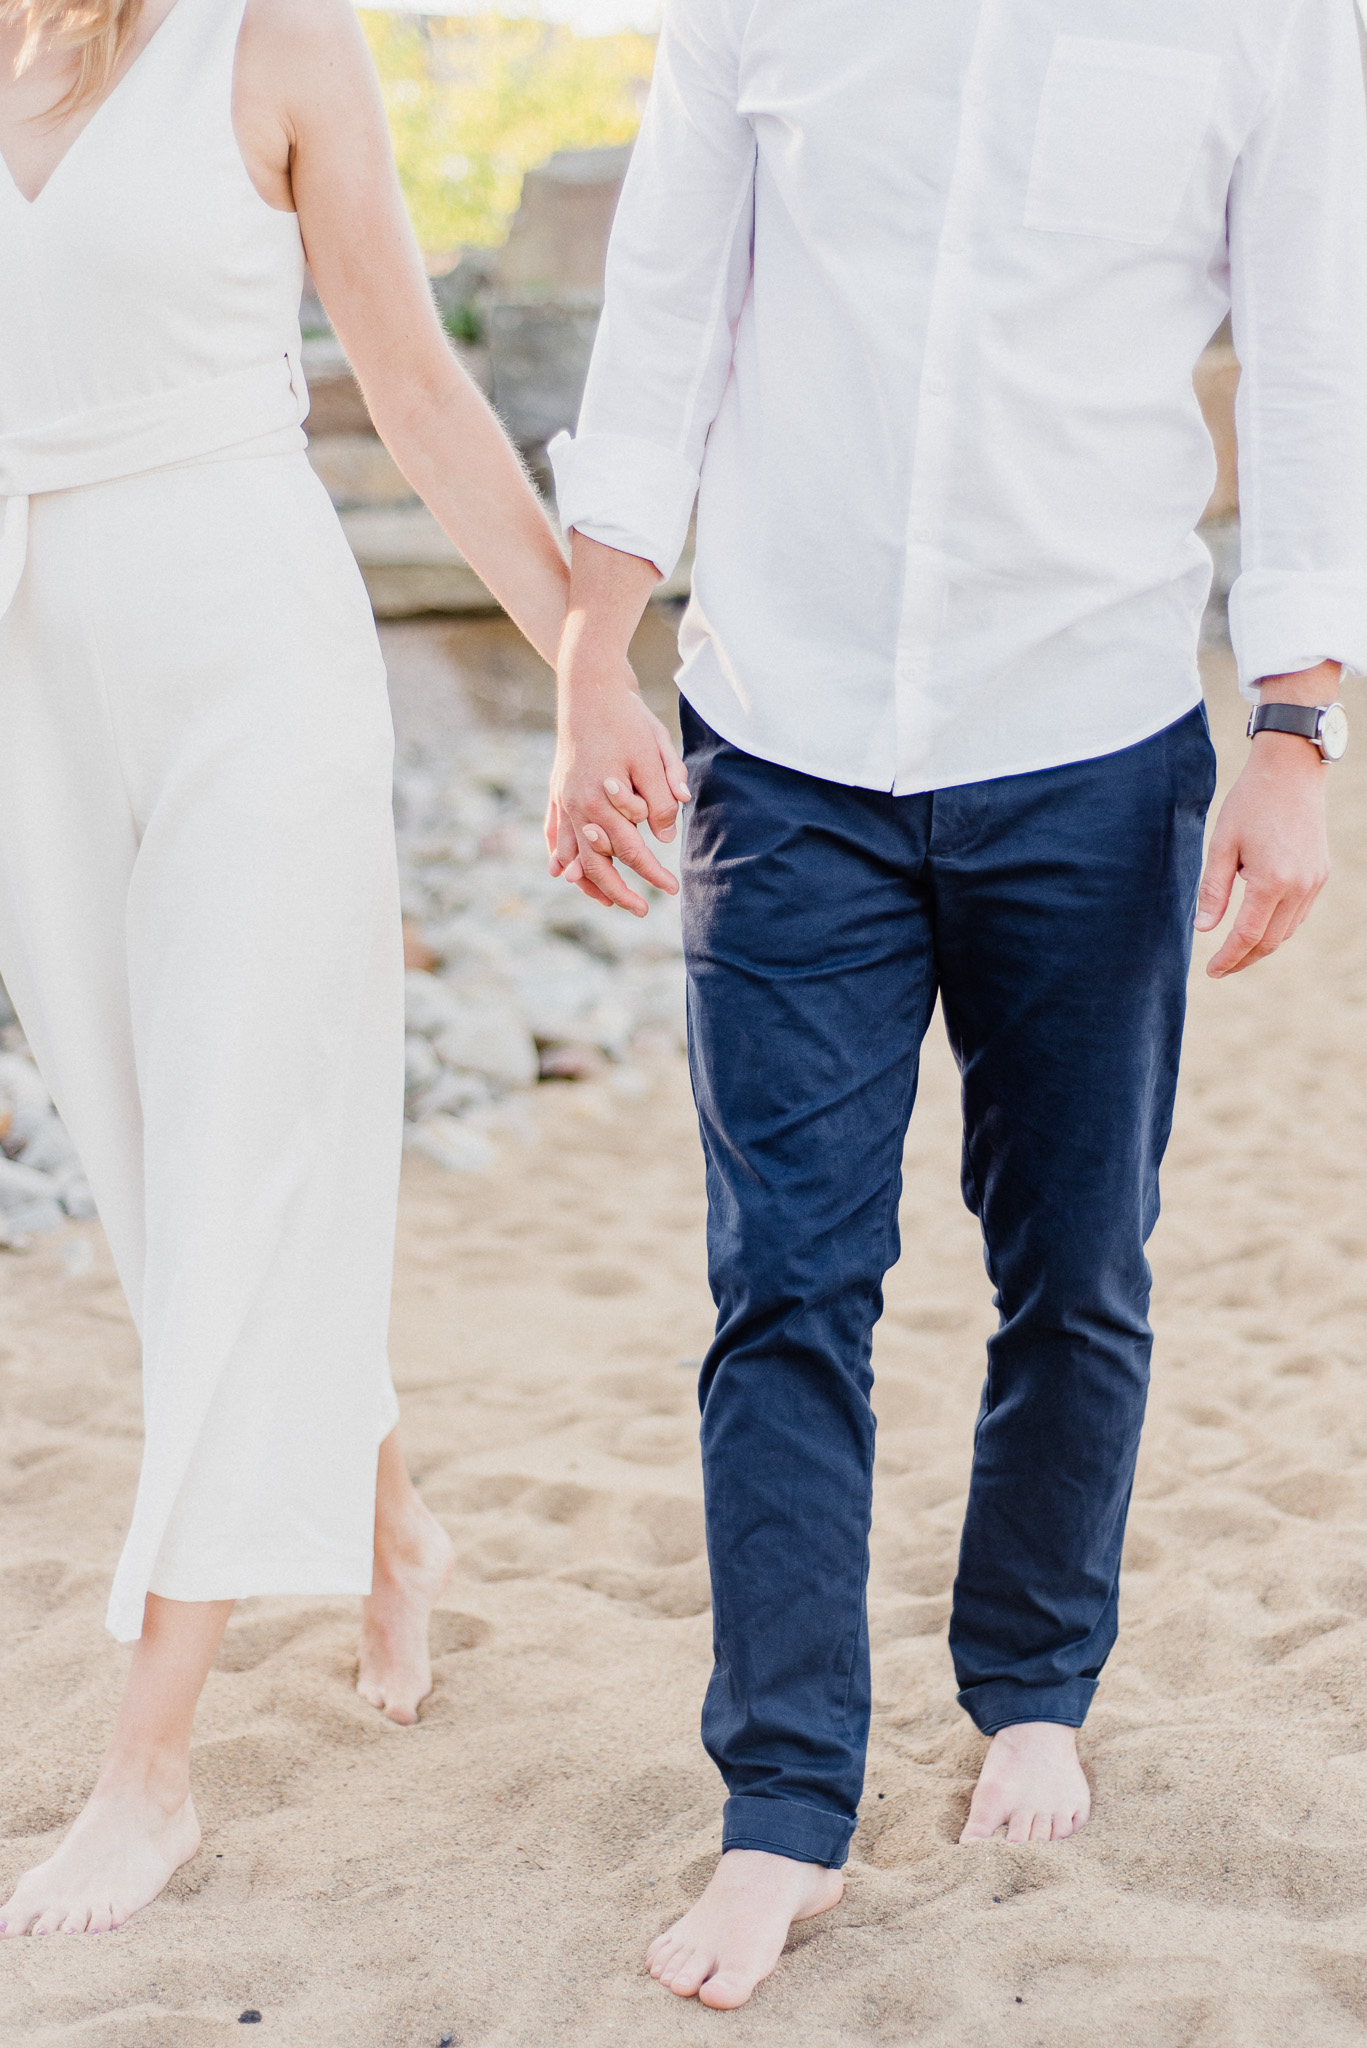 Lake Ontario Engagement Session by Jenn Kavanagh Photography